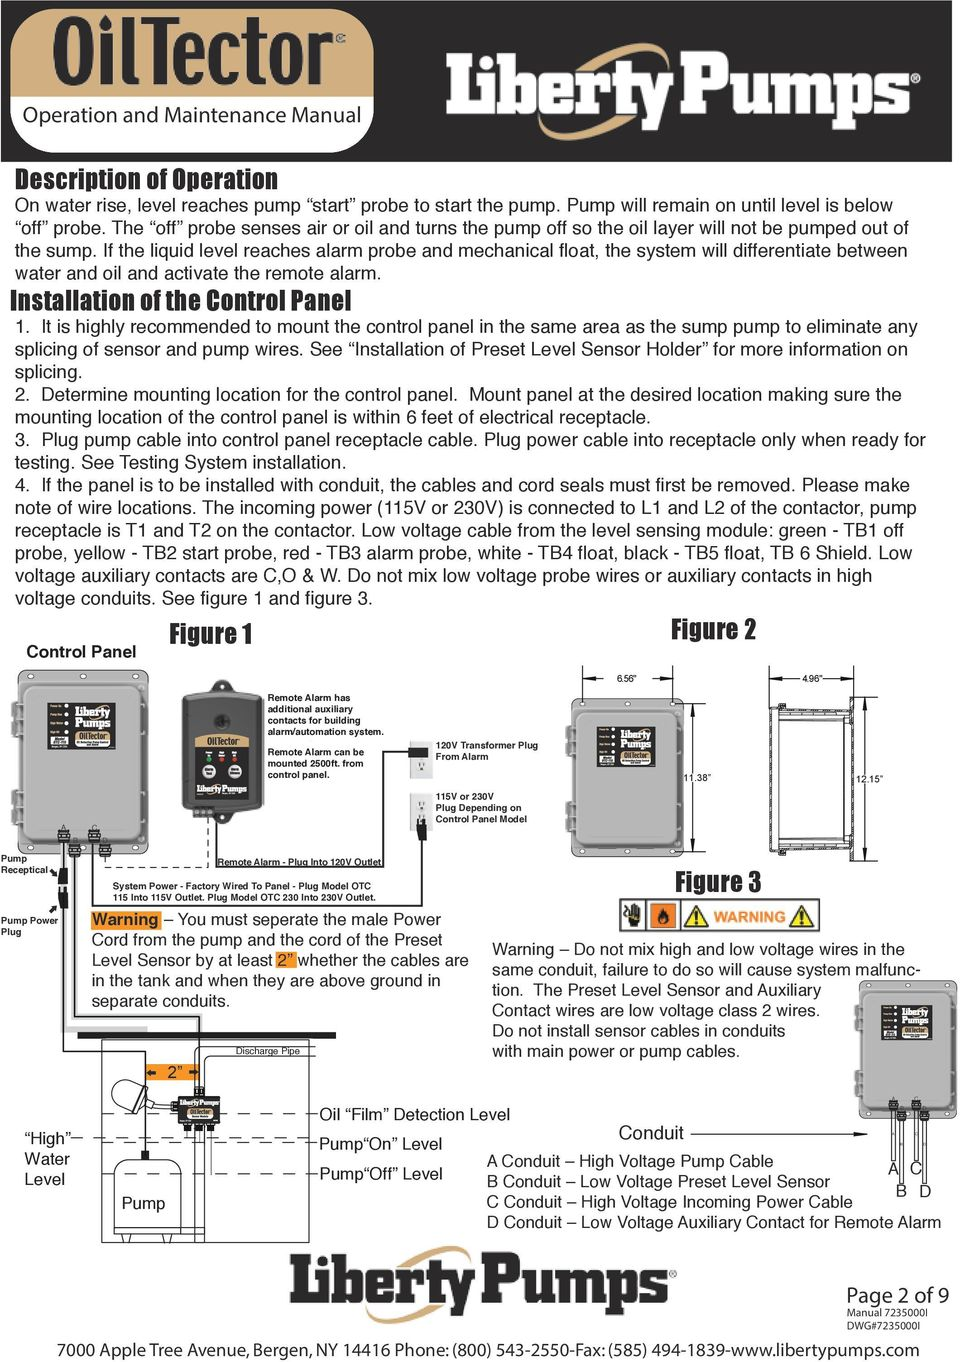 medium resolution of if the liquid level reaches alarm probe and mechanical float the system will differentiate between